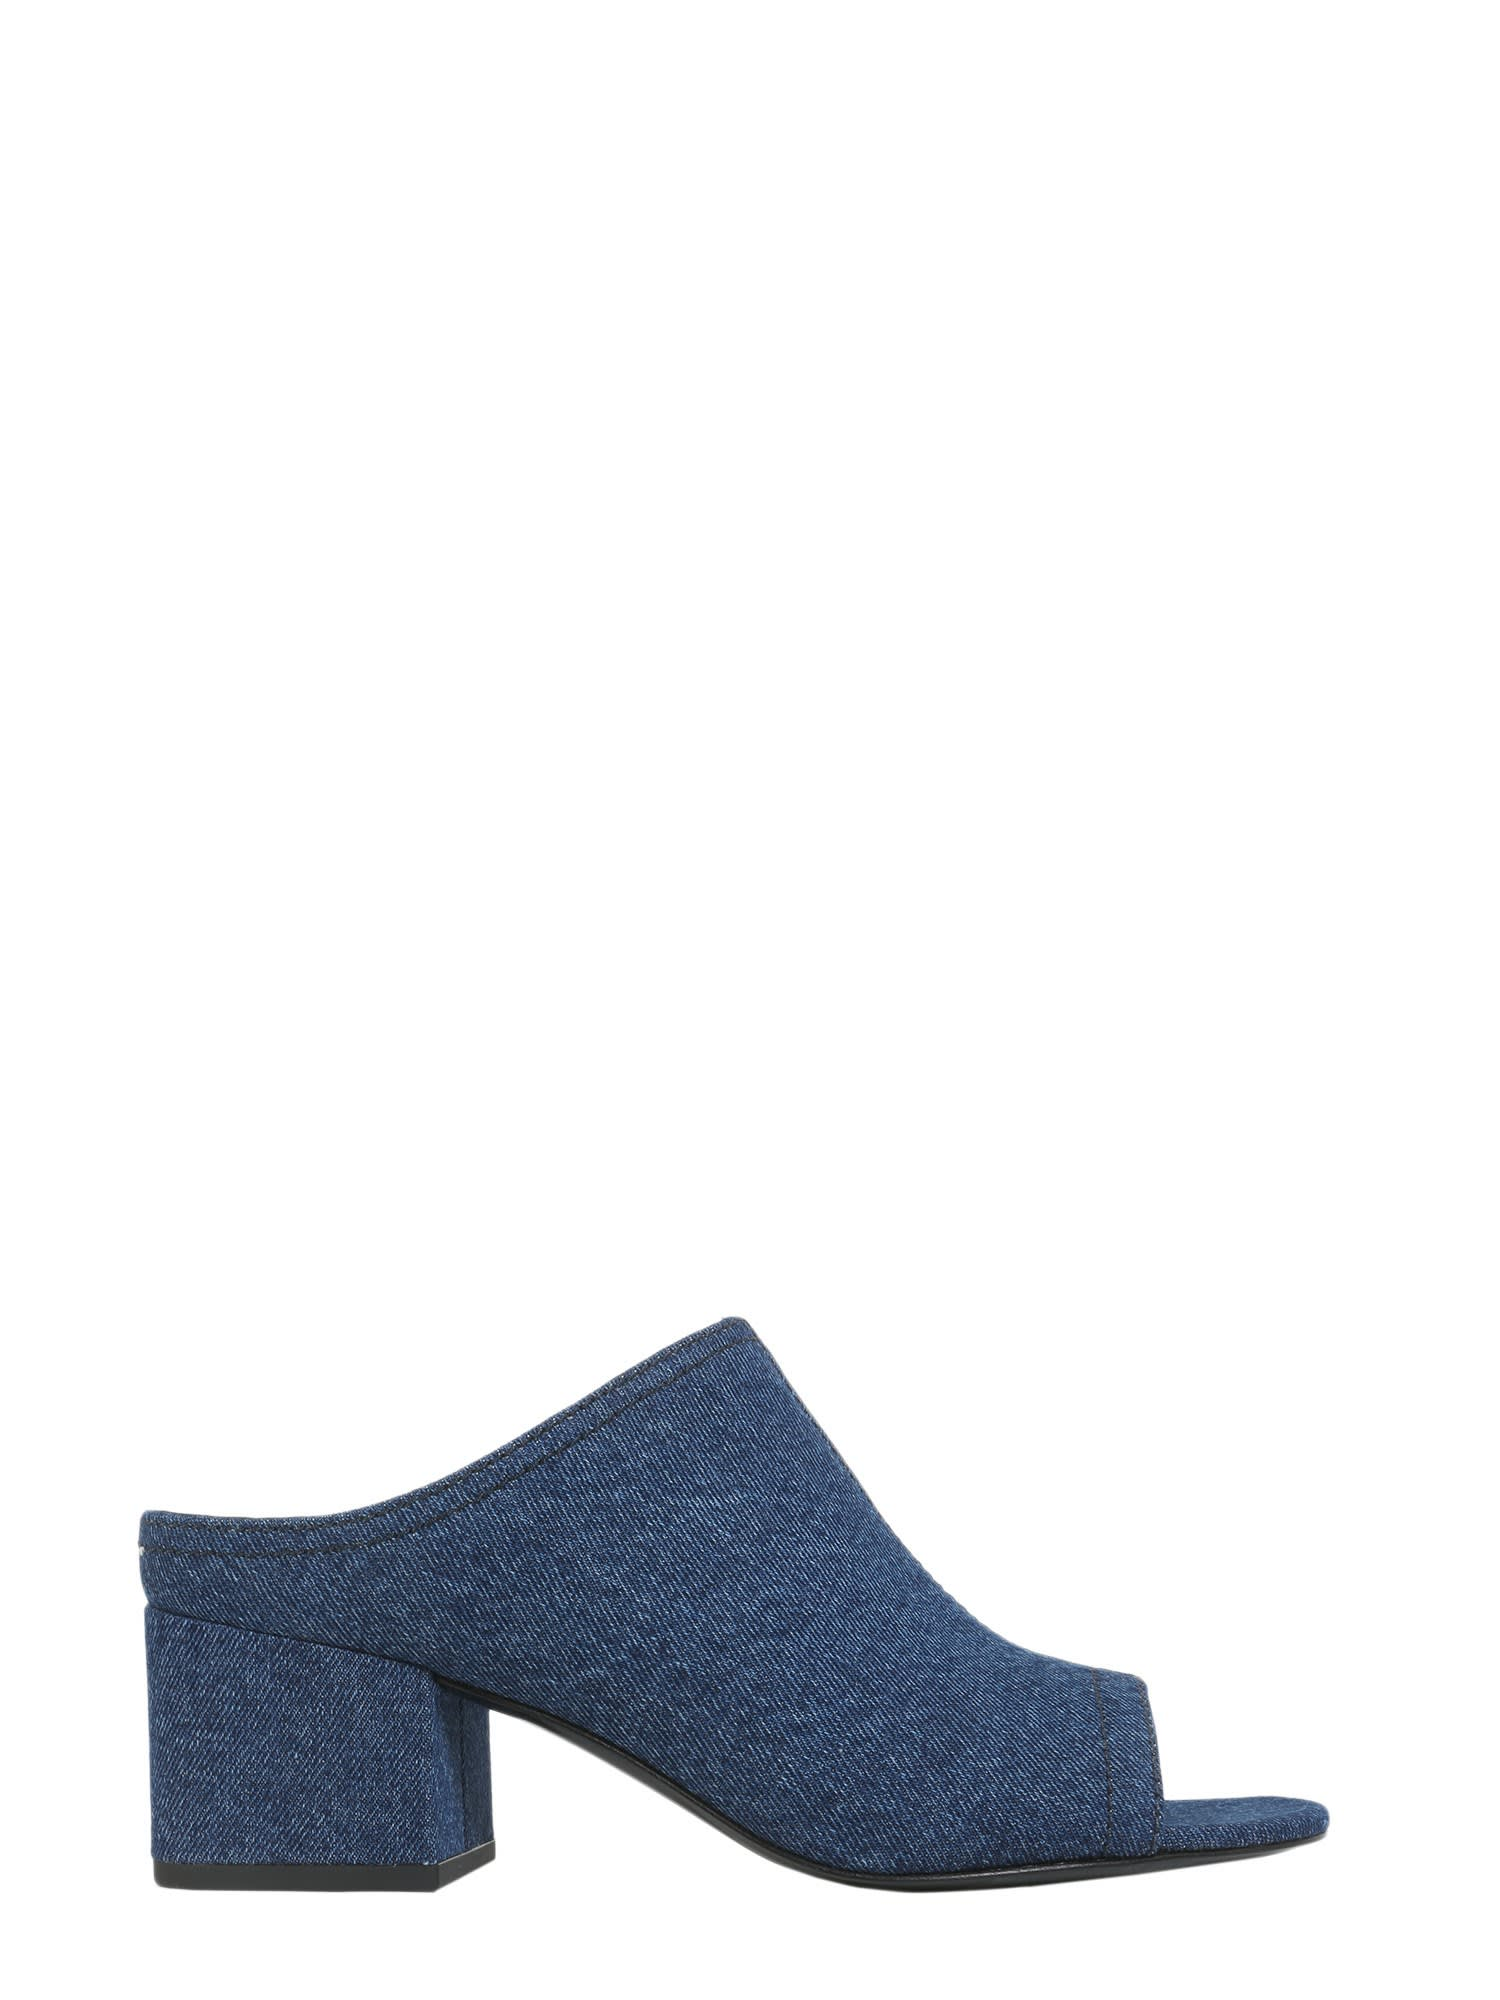 Buy 3.1 Phillip Lim Open Toe Cube Sabots online, shop 3.1 Phillip Lim shoes with free shipping